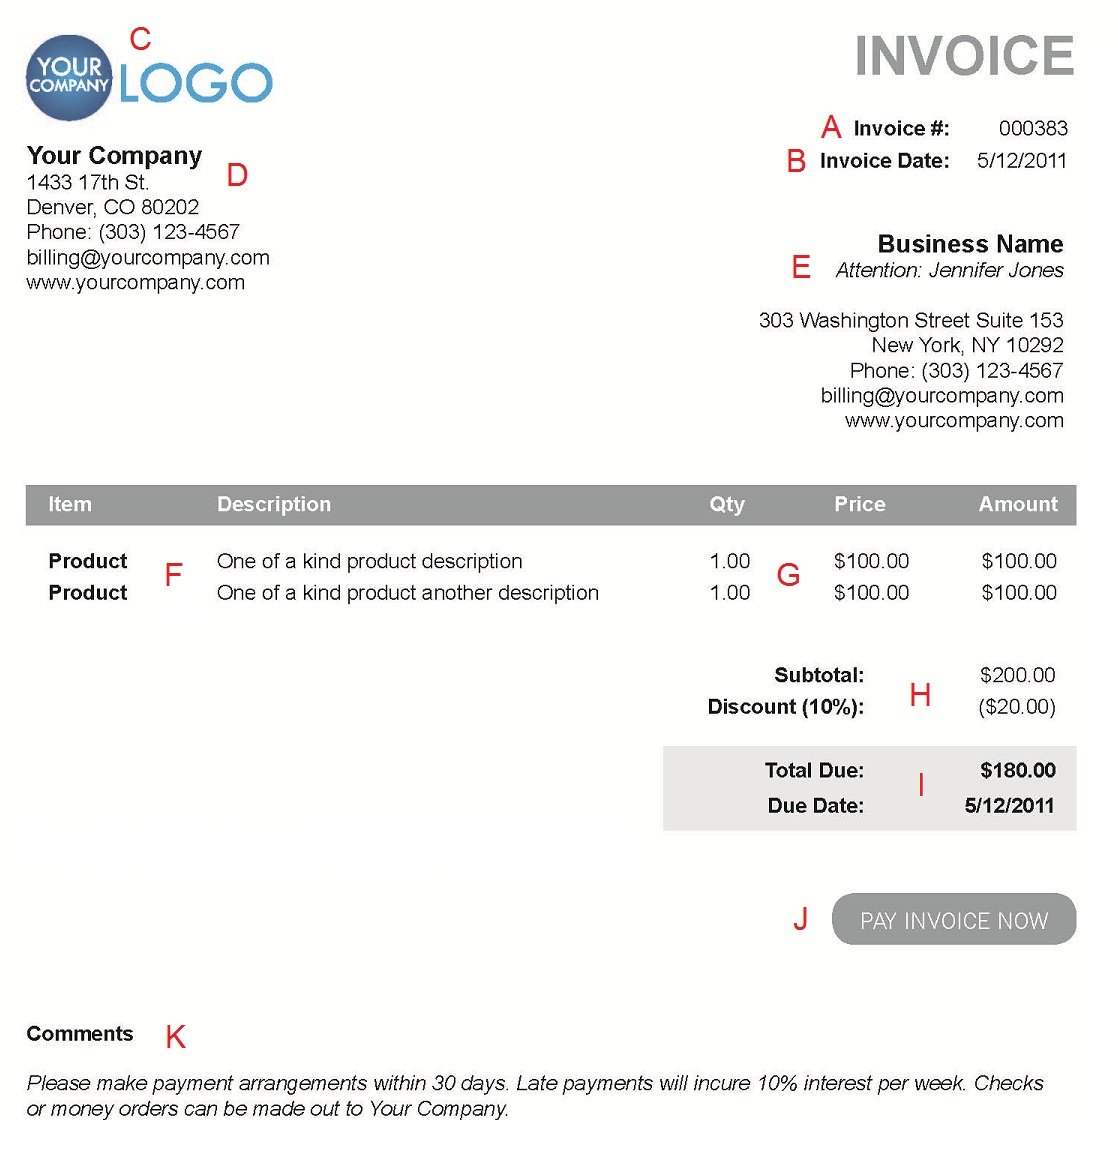 Theologygeekblogus  Prepossessing The  Different Sections Of An Electronic Payment Invoice With Fair A  With Agreeable Dhl Commercial Invoice Form Also Tutoring Invoice Template In Addition Create Custom Invoices And What Is A Car Invoice As Well As Pages Invoice Templates Free Additionally Free Work Invoice Template From Paysimplecom With Theologygeekblogus  Fair The  Different Sections Of An Electronic Payment Invoice With Agreeable A  And Prepossessing Dhl Commercial Invoice Form Also Tutoring Invoice Template In Addition Create Custom Invoices From Paysimplecom